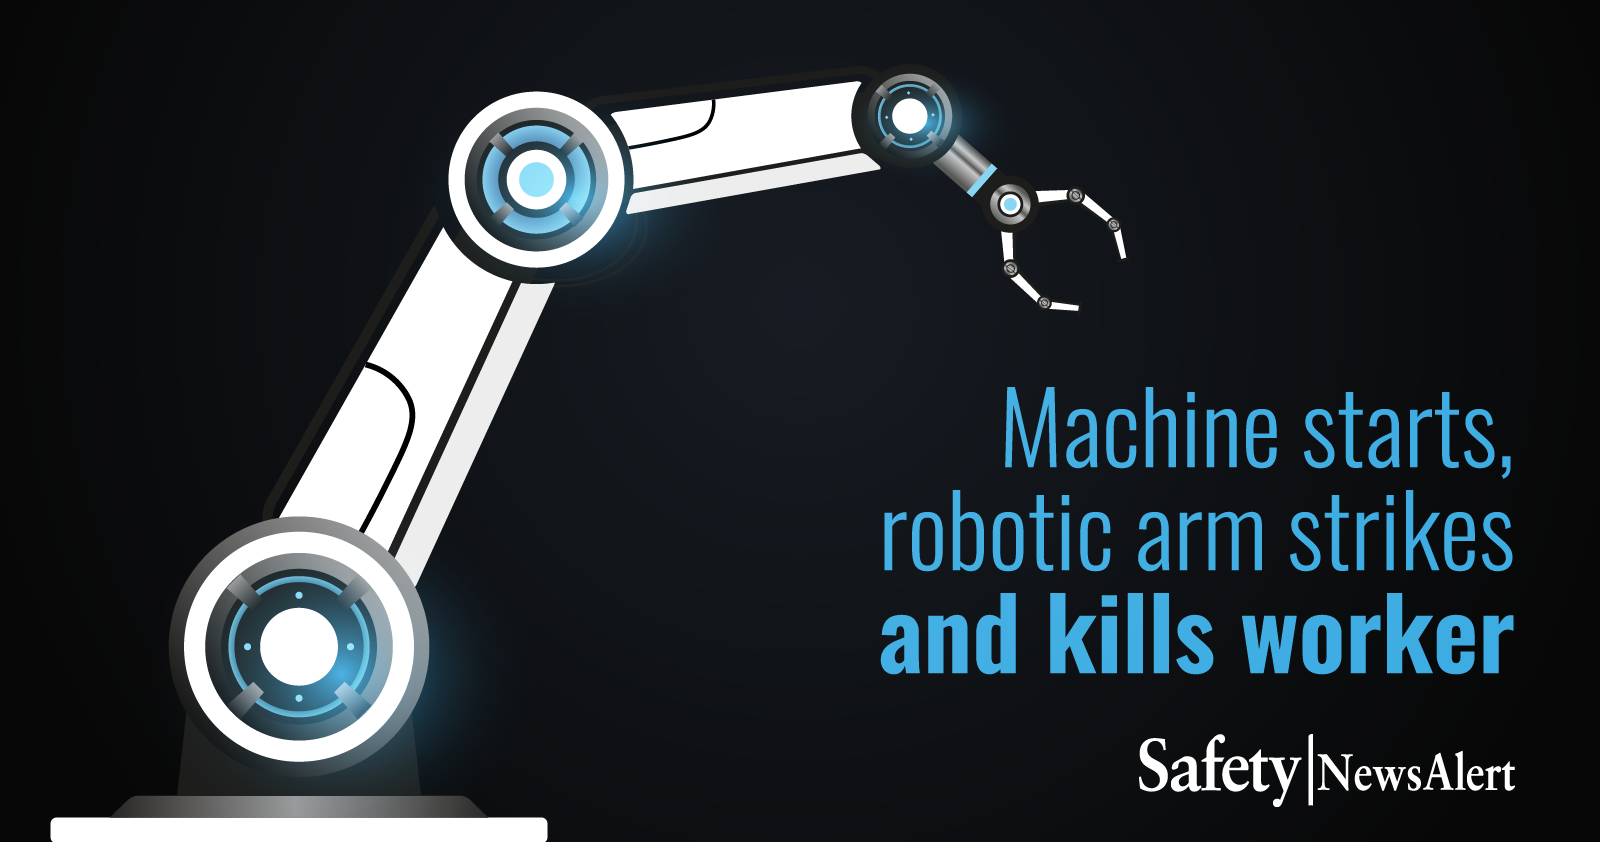 machine starts robotic arm strikes and kills worker